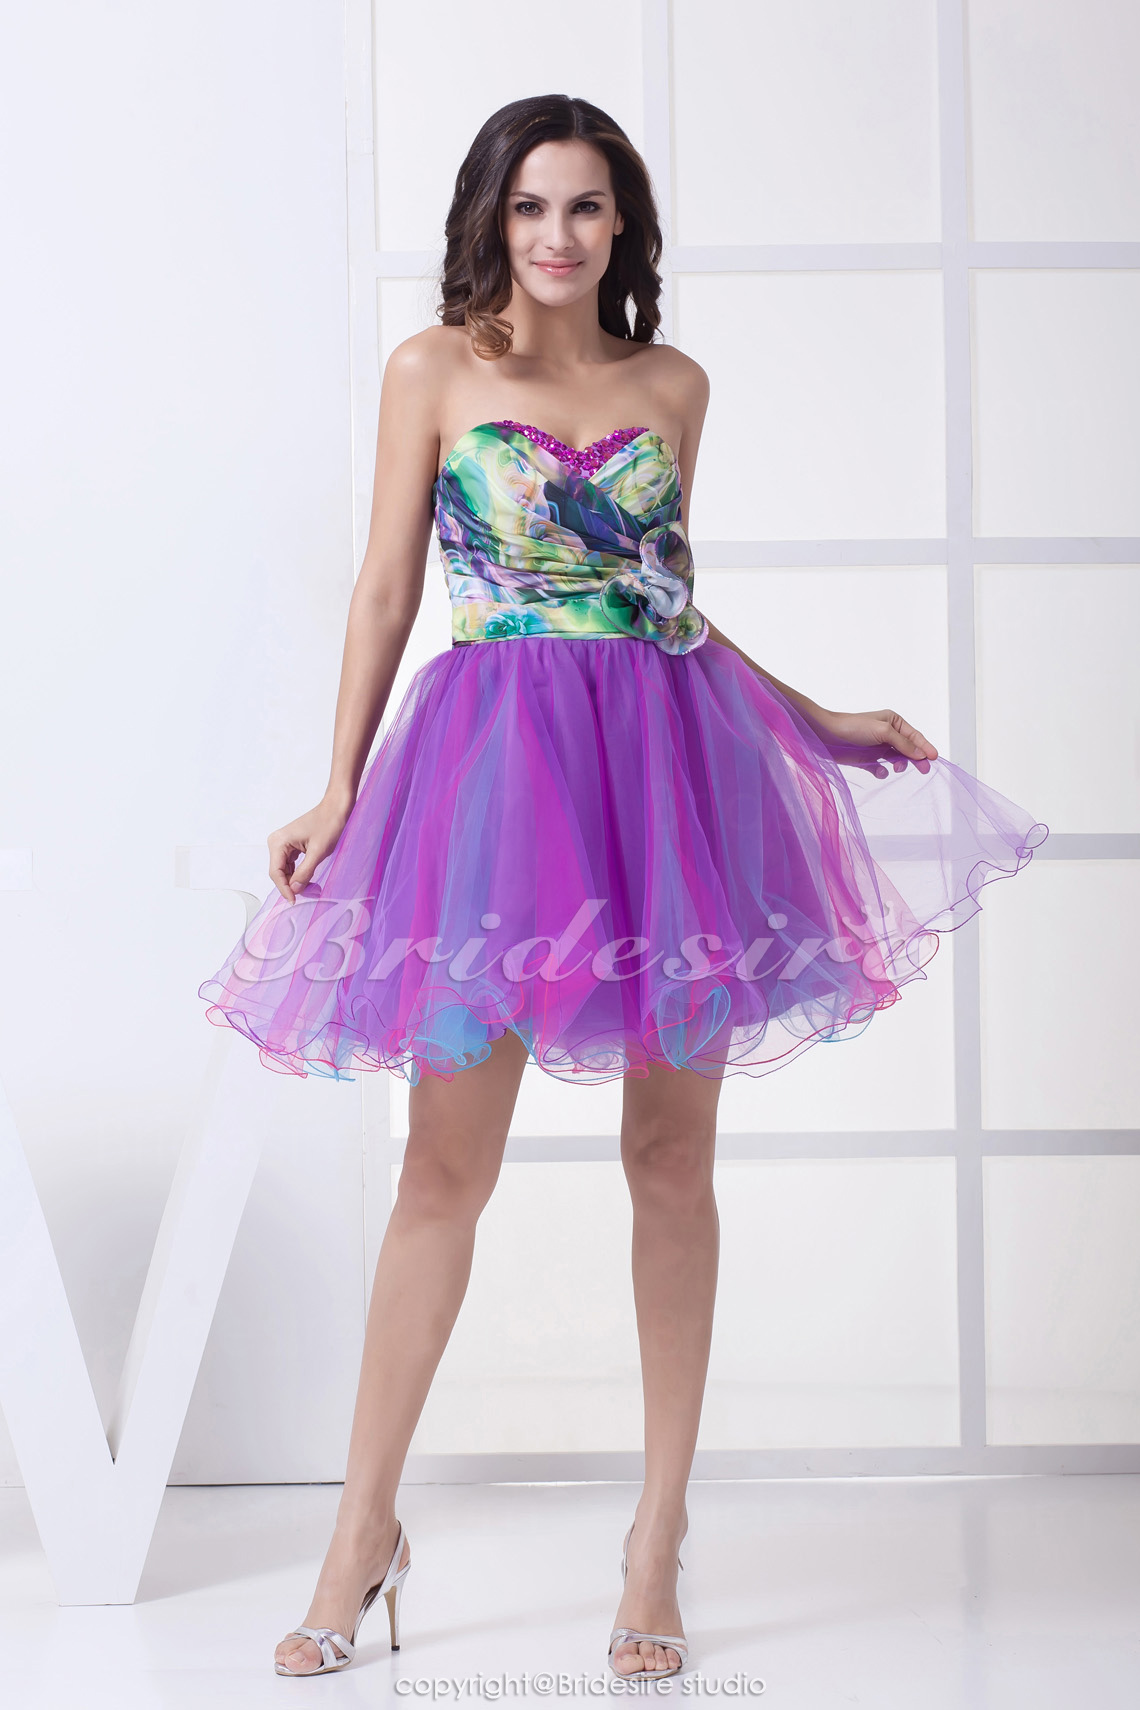 A-line Sweetheart Short/Mini Sleeveless Chiffon Tulle Dress